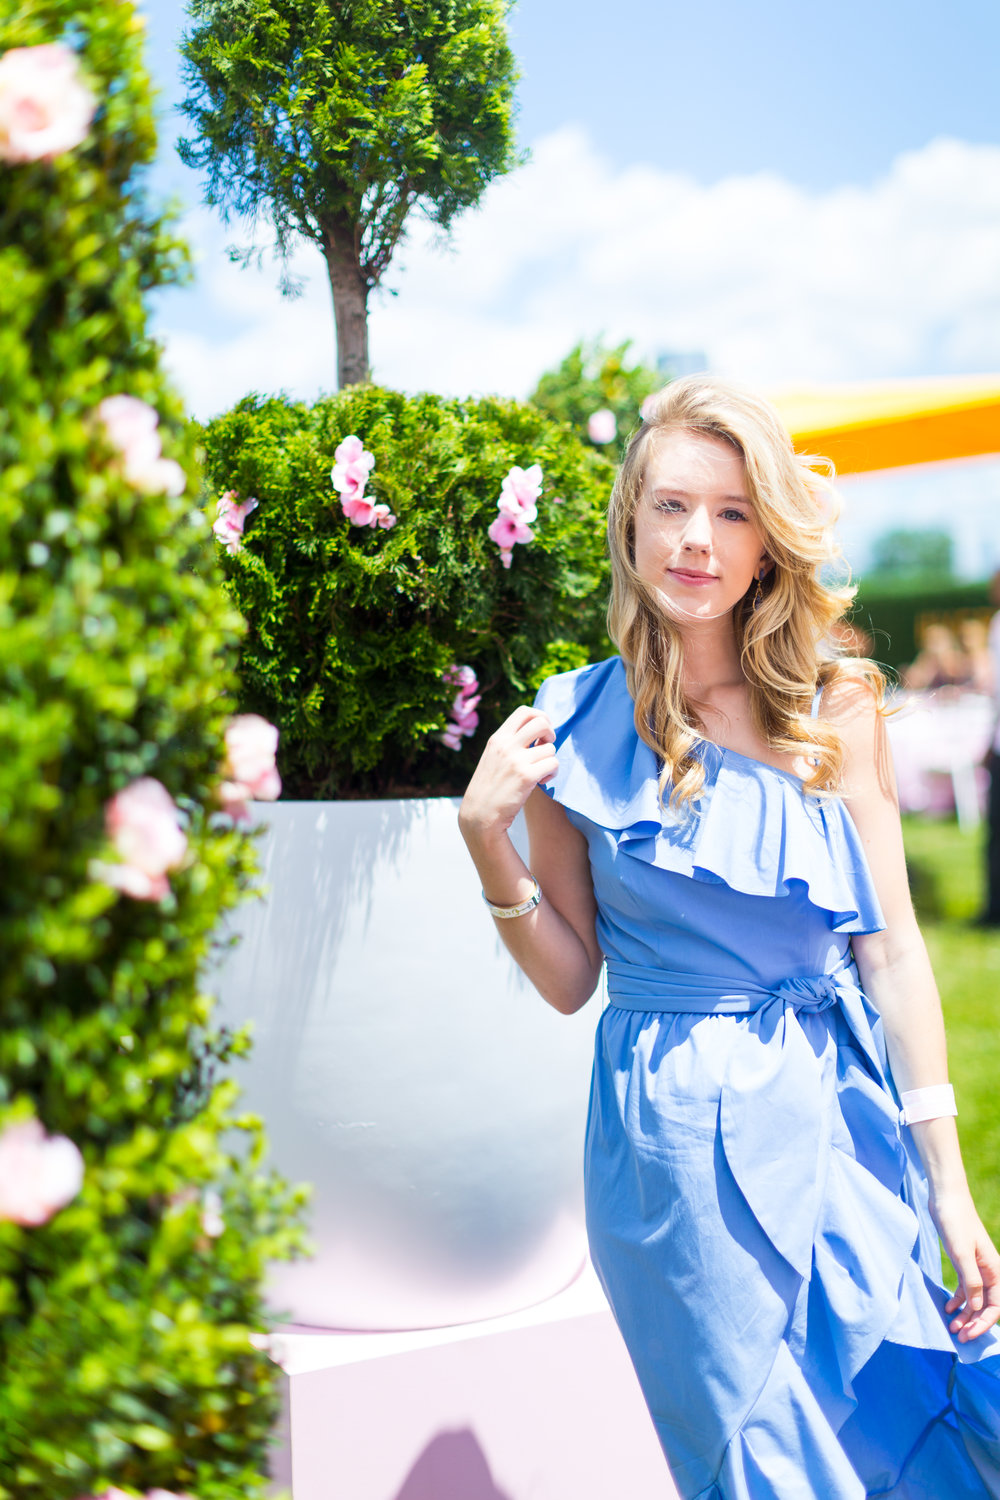 Veuve Clicquot Polo Classic NYC Summer Style Ruffled One Shoulder Blue Dress-4.jpg